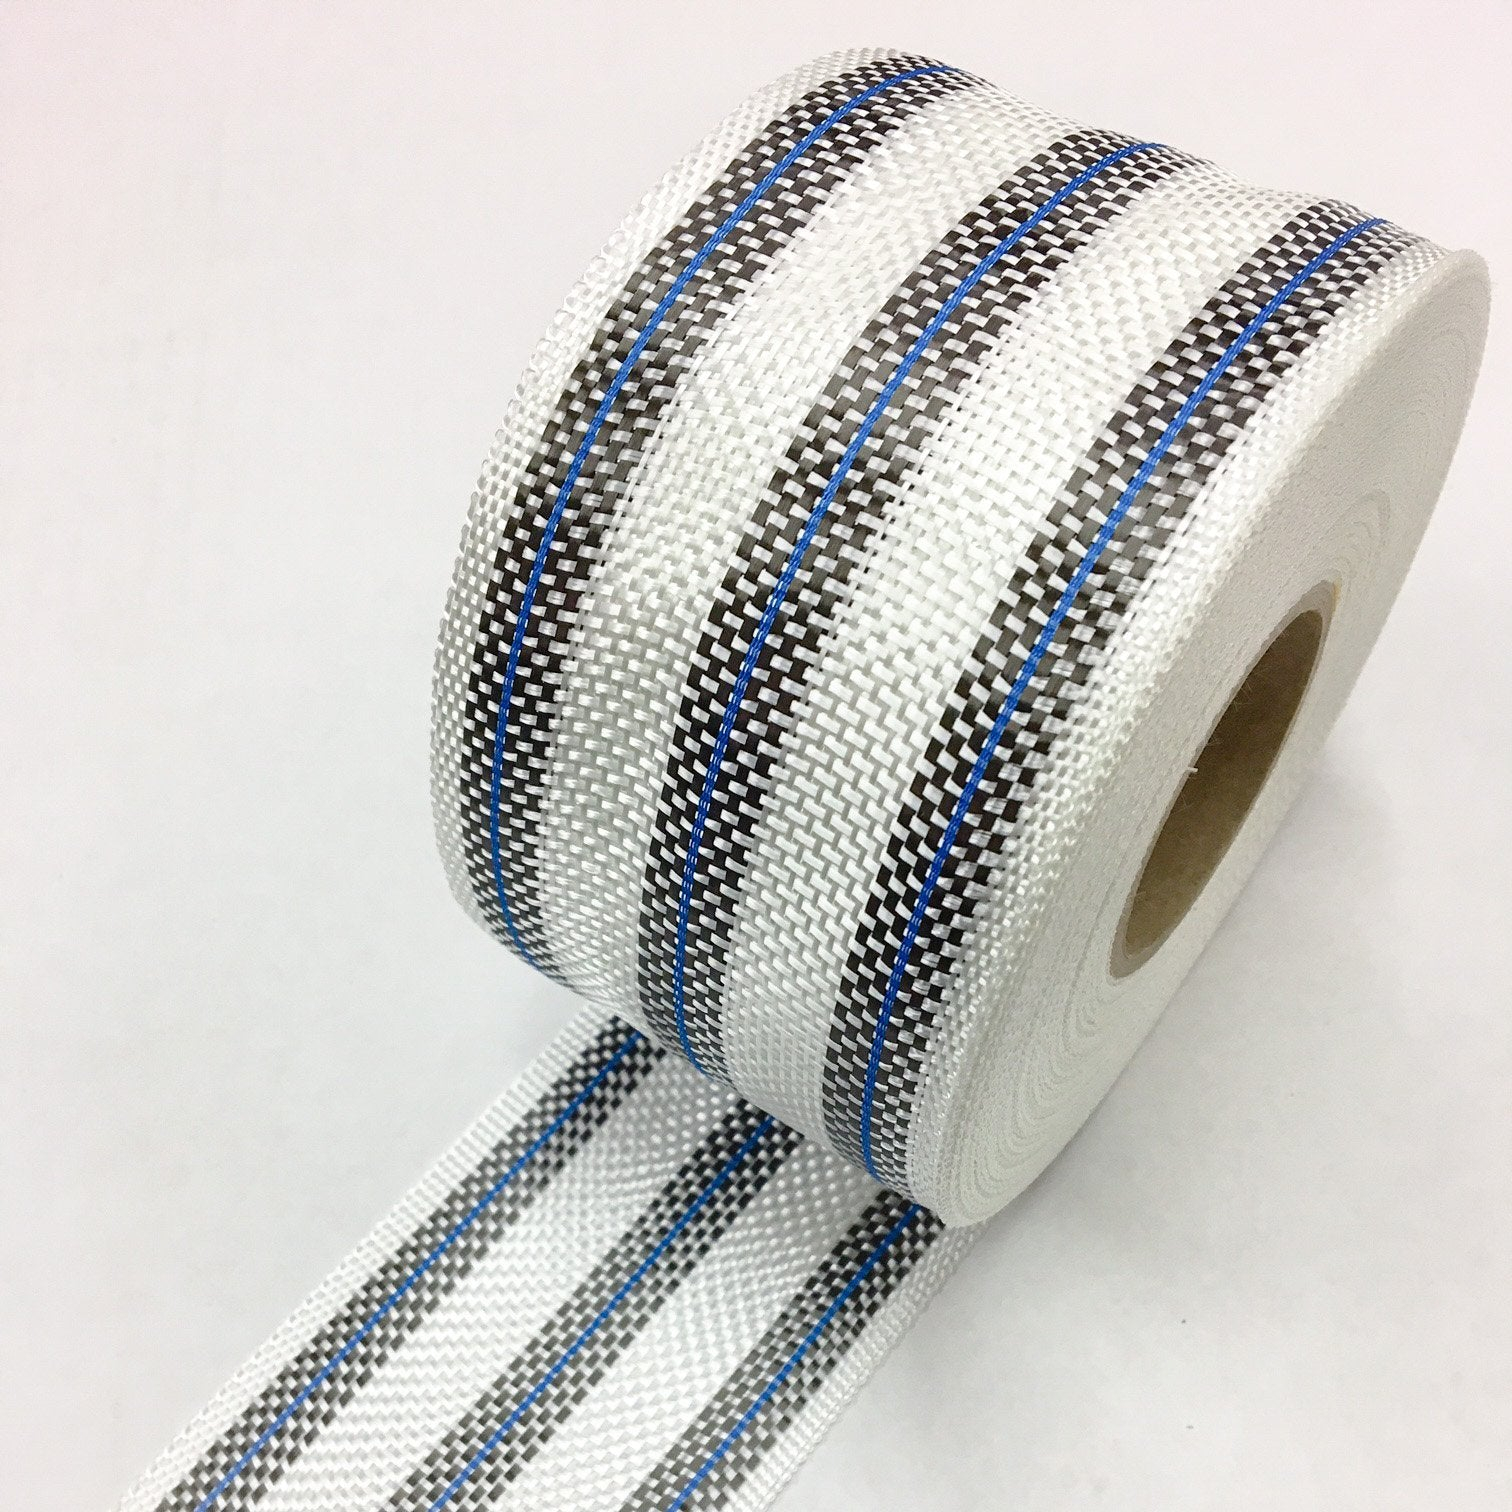 3 Band Carbon Rail Tape with Blue Fluro insert